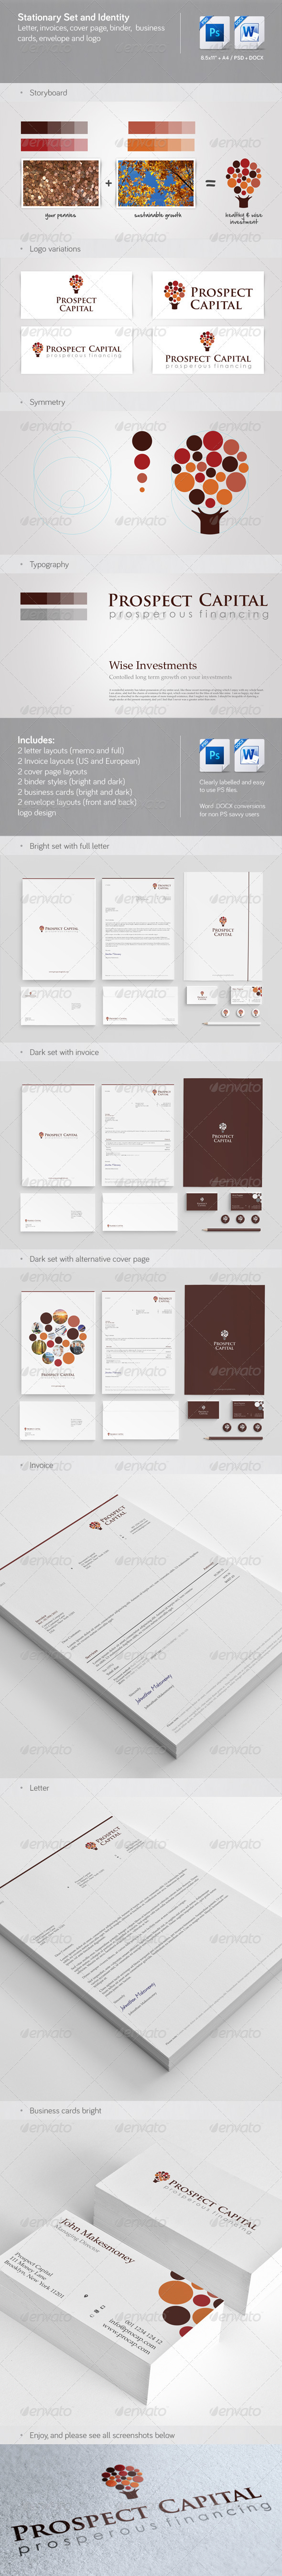 Corporate Stationery, Invoice and Identity - Stationery Print Templates